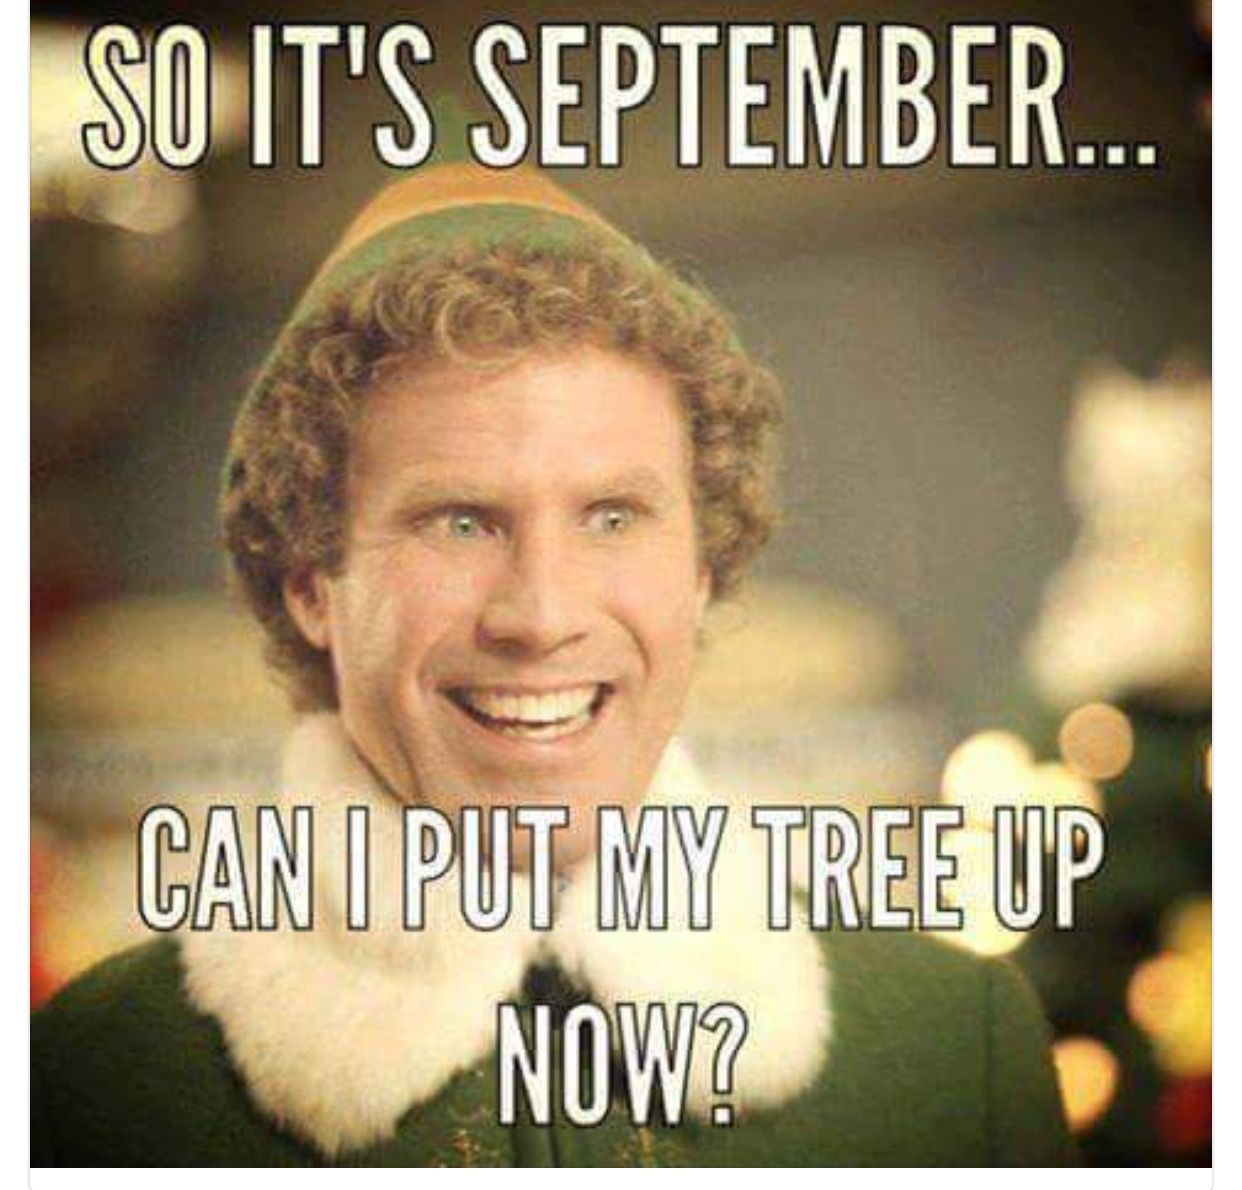 So it's September, can I put my tree up now meme with Will Farrell from Elf.